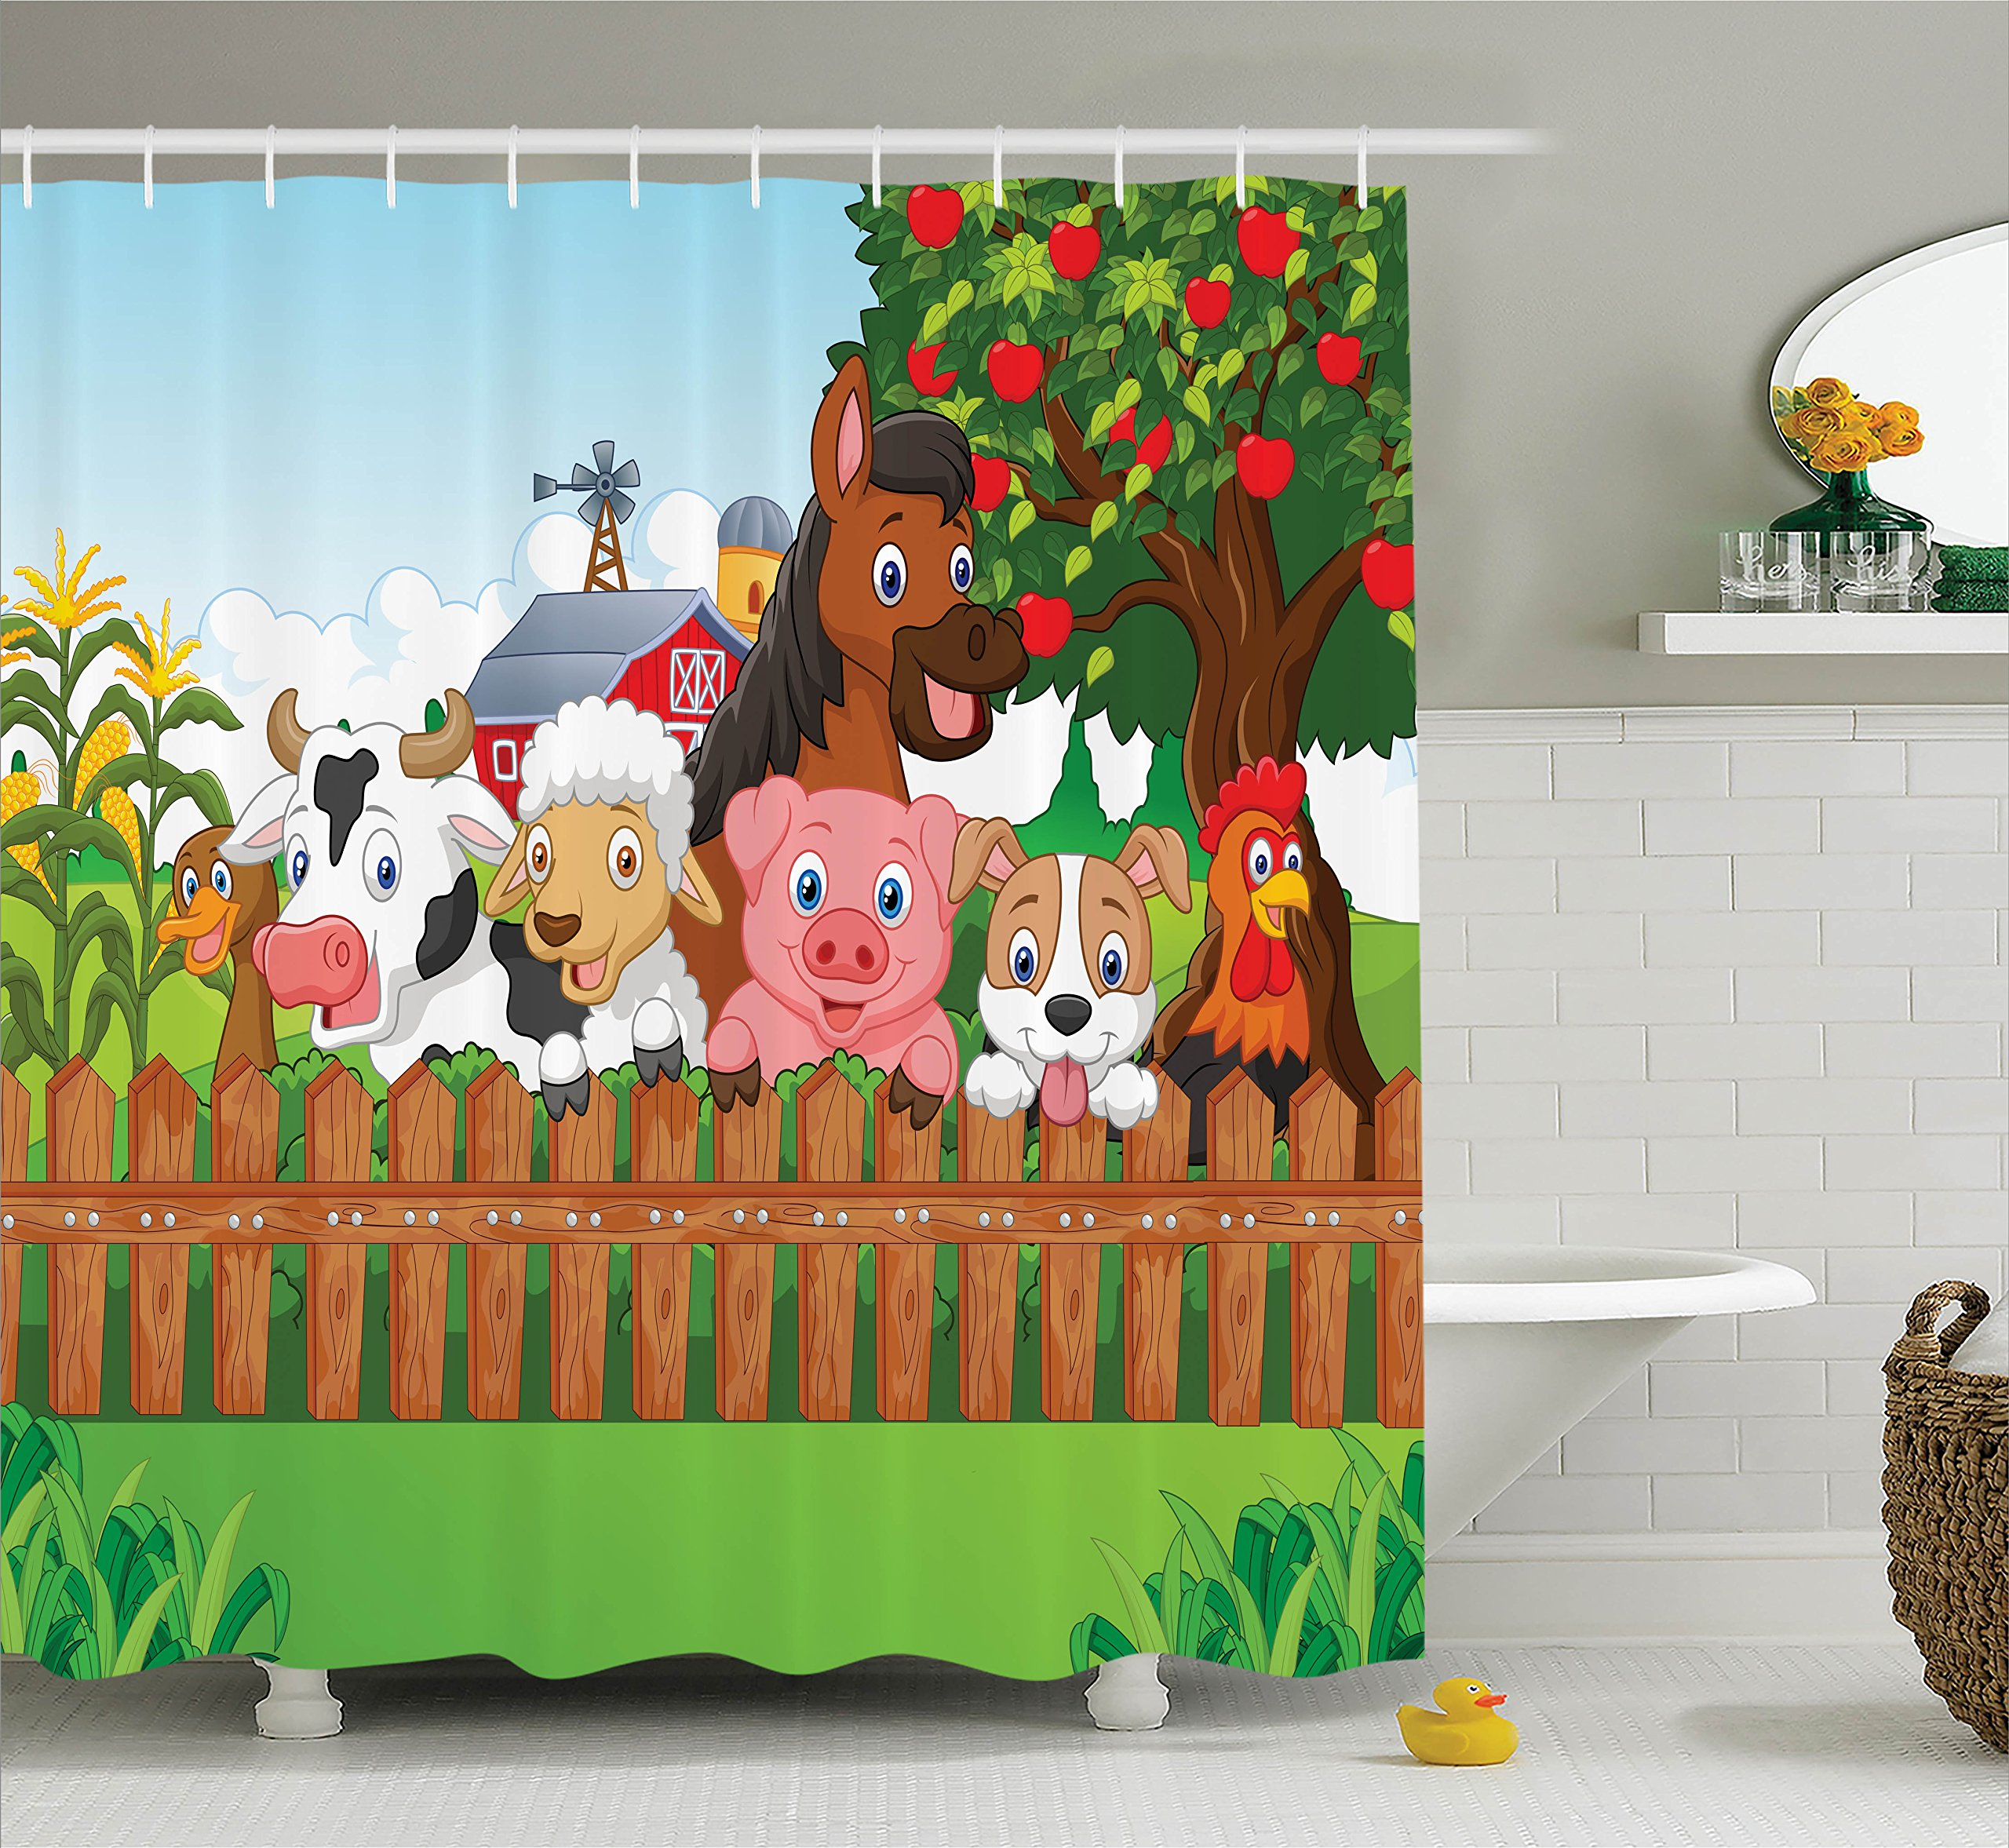 Kids Shower Curtain Cartoon Decor by Ambesonne, Cute Farm Animals on the Fence of Comic Mascots with Dog Cow Horse for Kids Decor, Fabric Bathroom Shower Curtain Set, 75 Inches Long, Multi